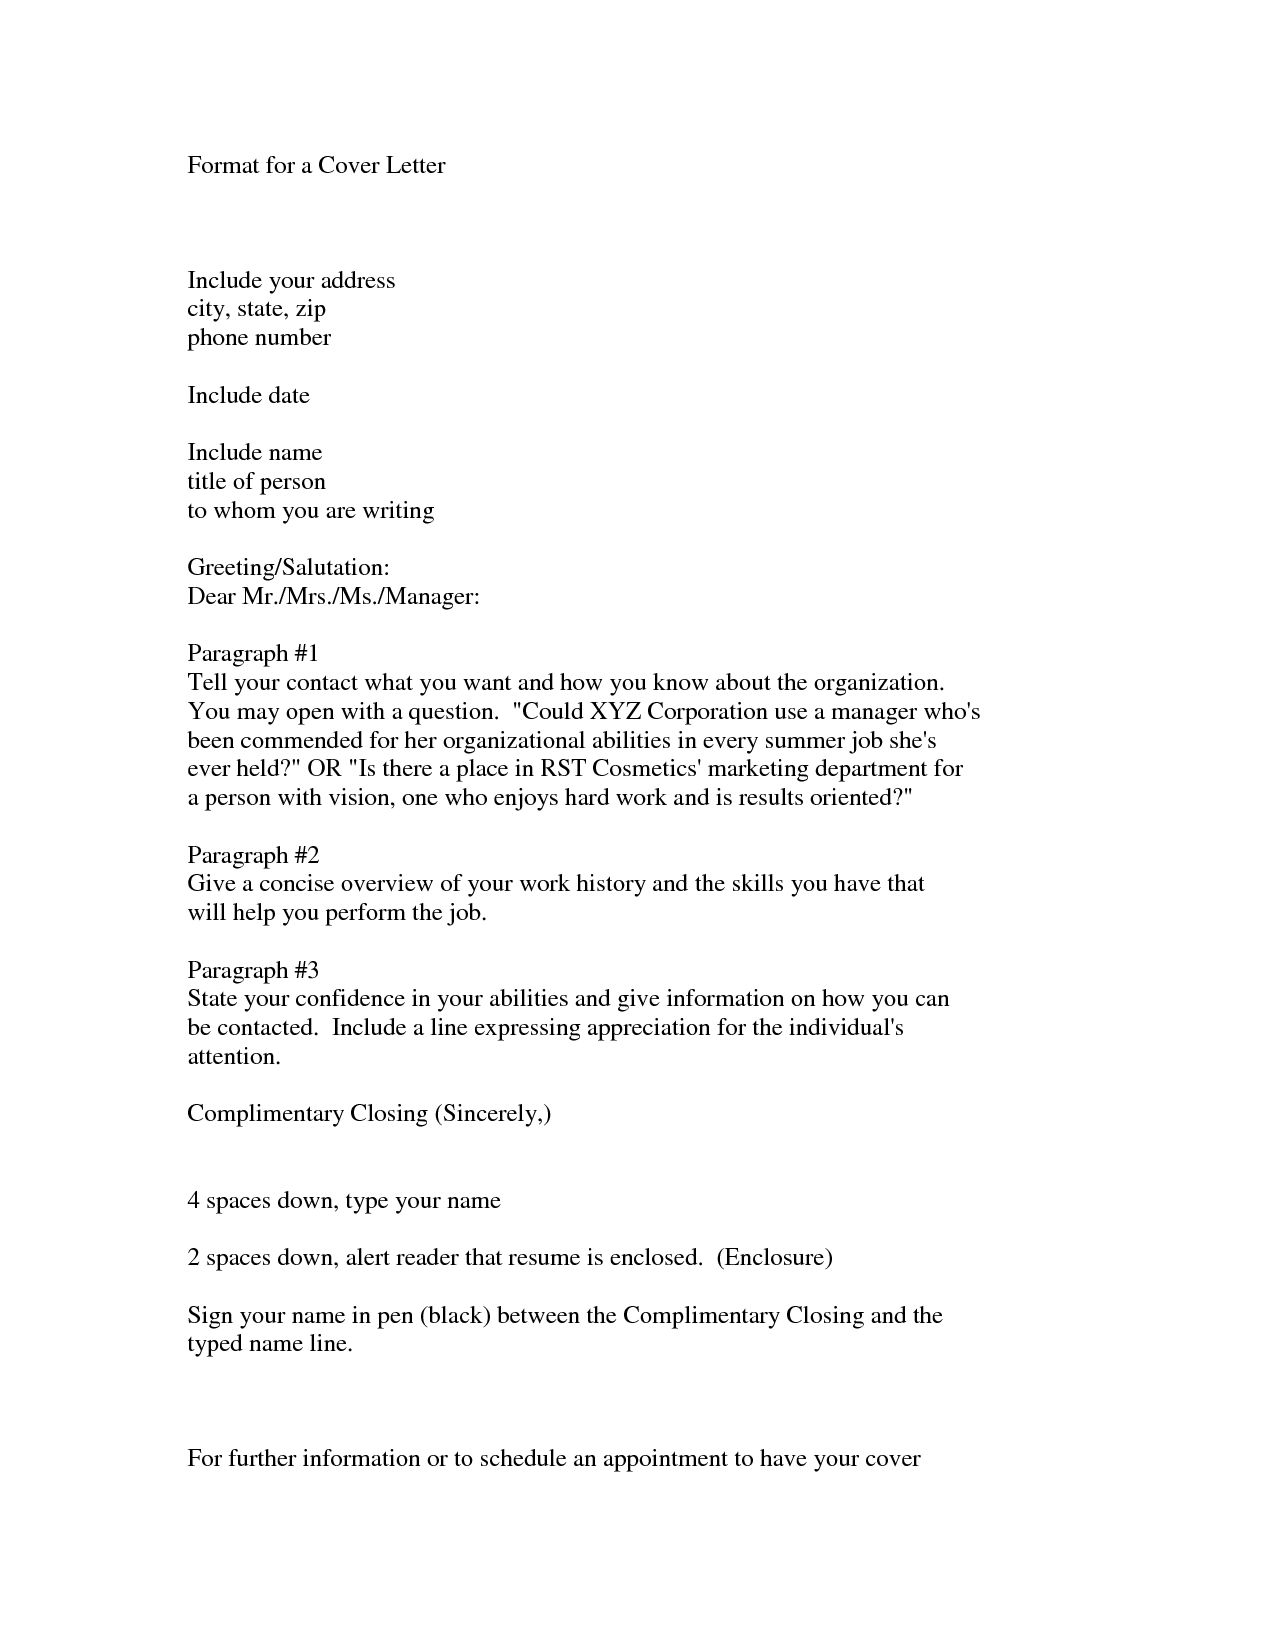 Type Cover Letter Resume Design Sample For Novel Submission The